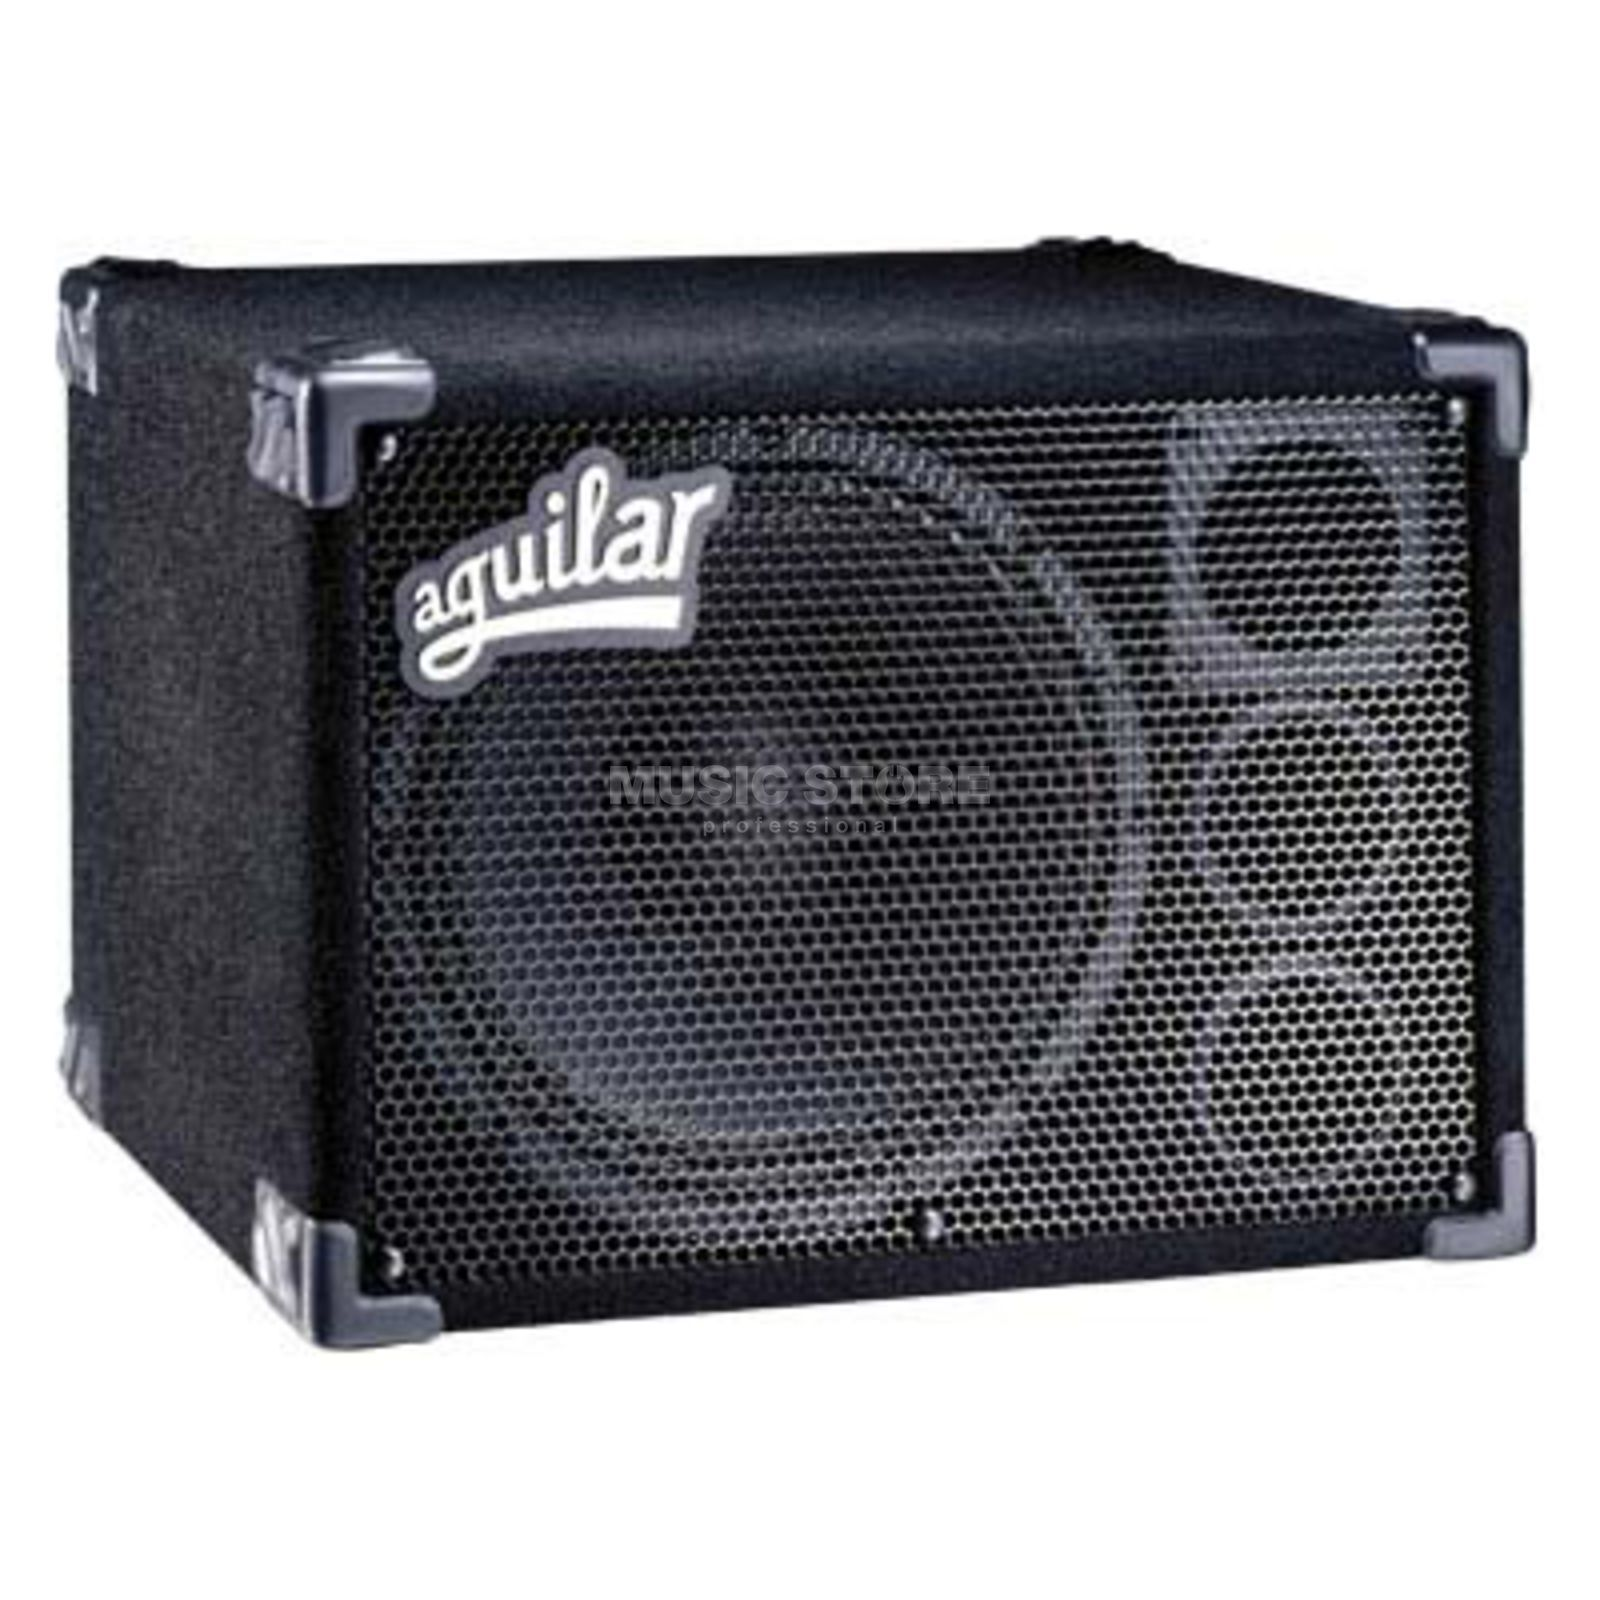 "Aguilar GS 112 Cabinet 8 Ohm 1x 12"" Woofer + Tweeter Изображение товара"